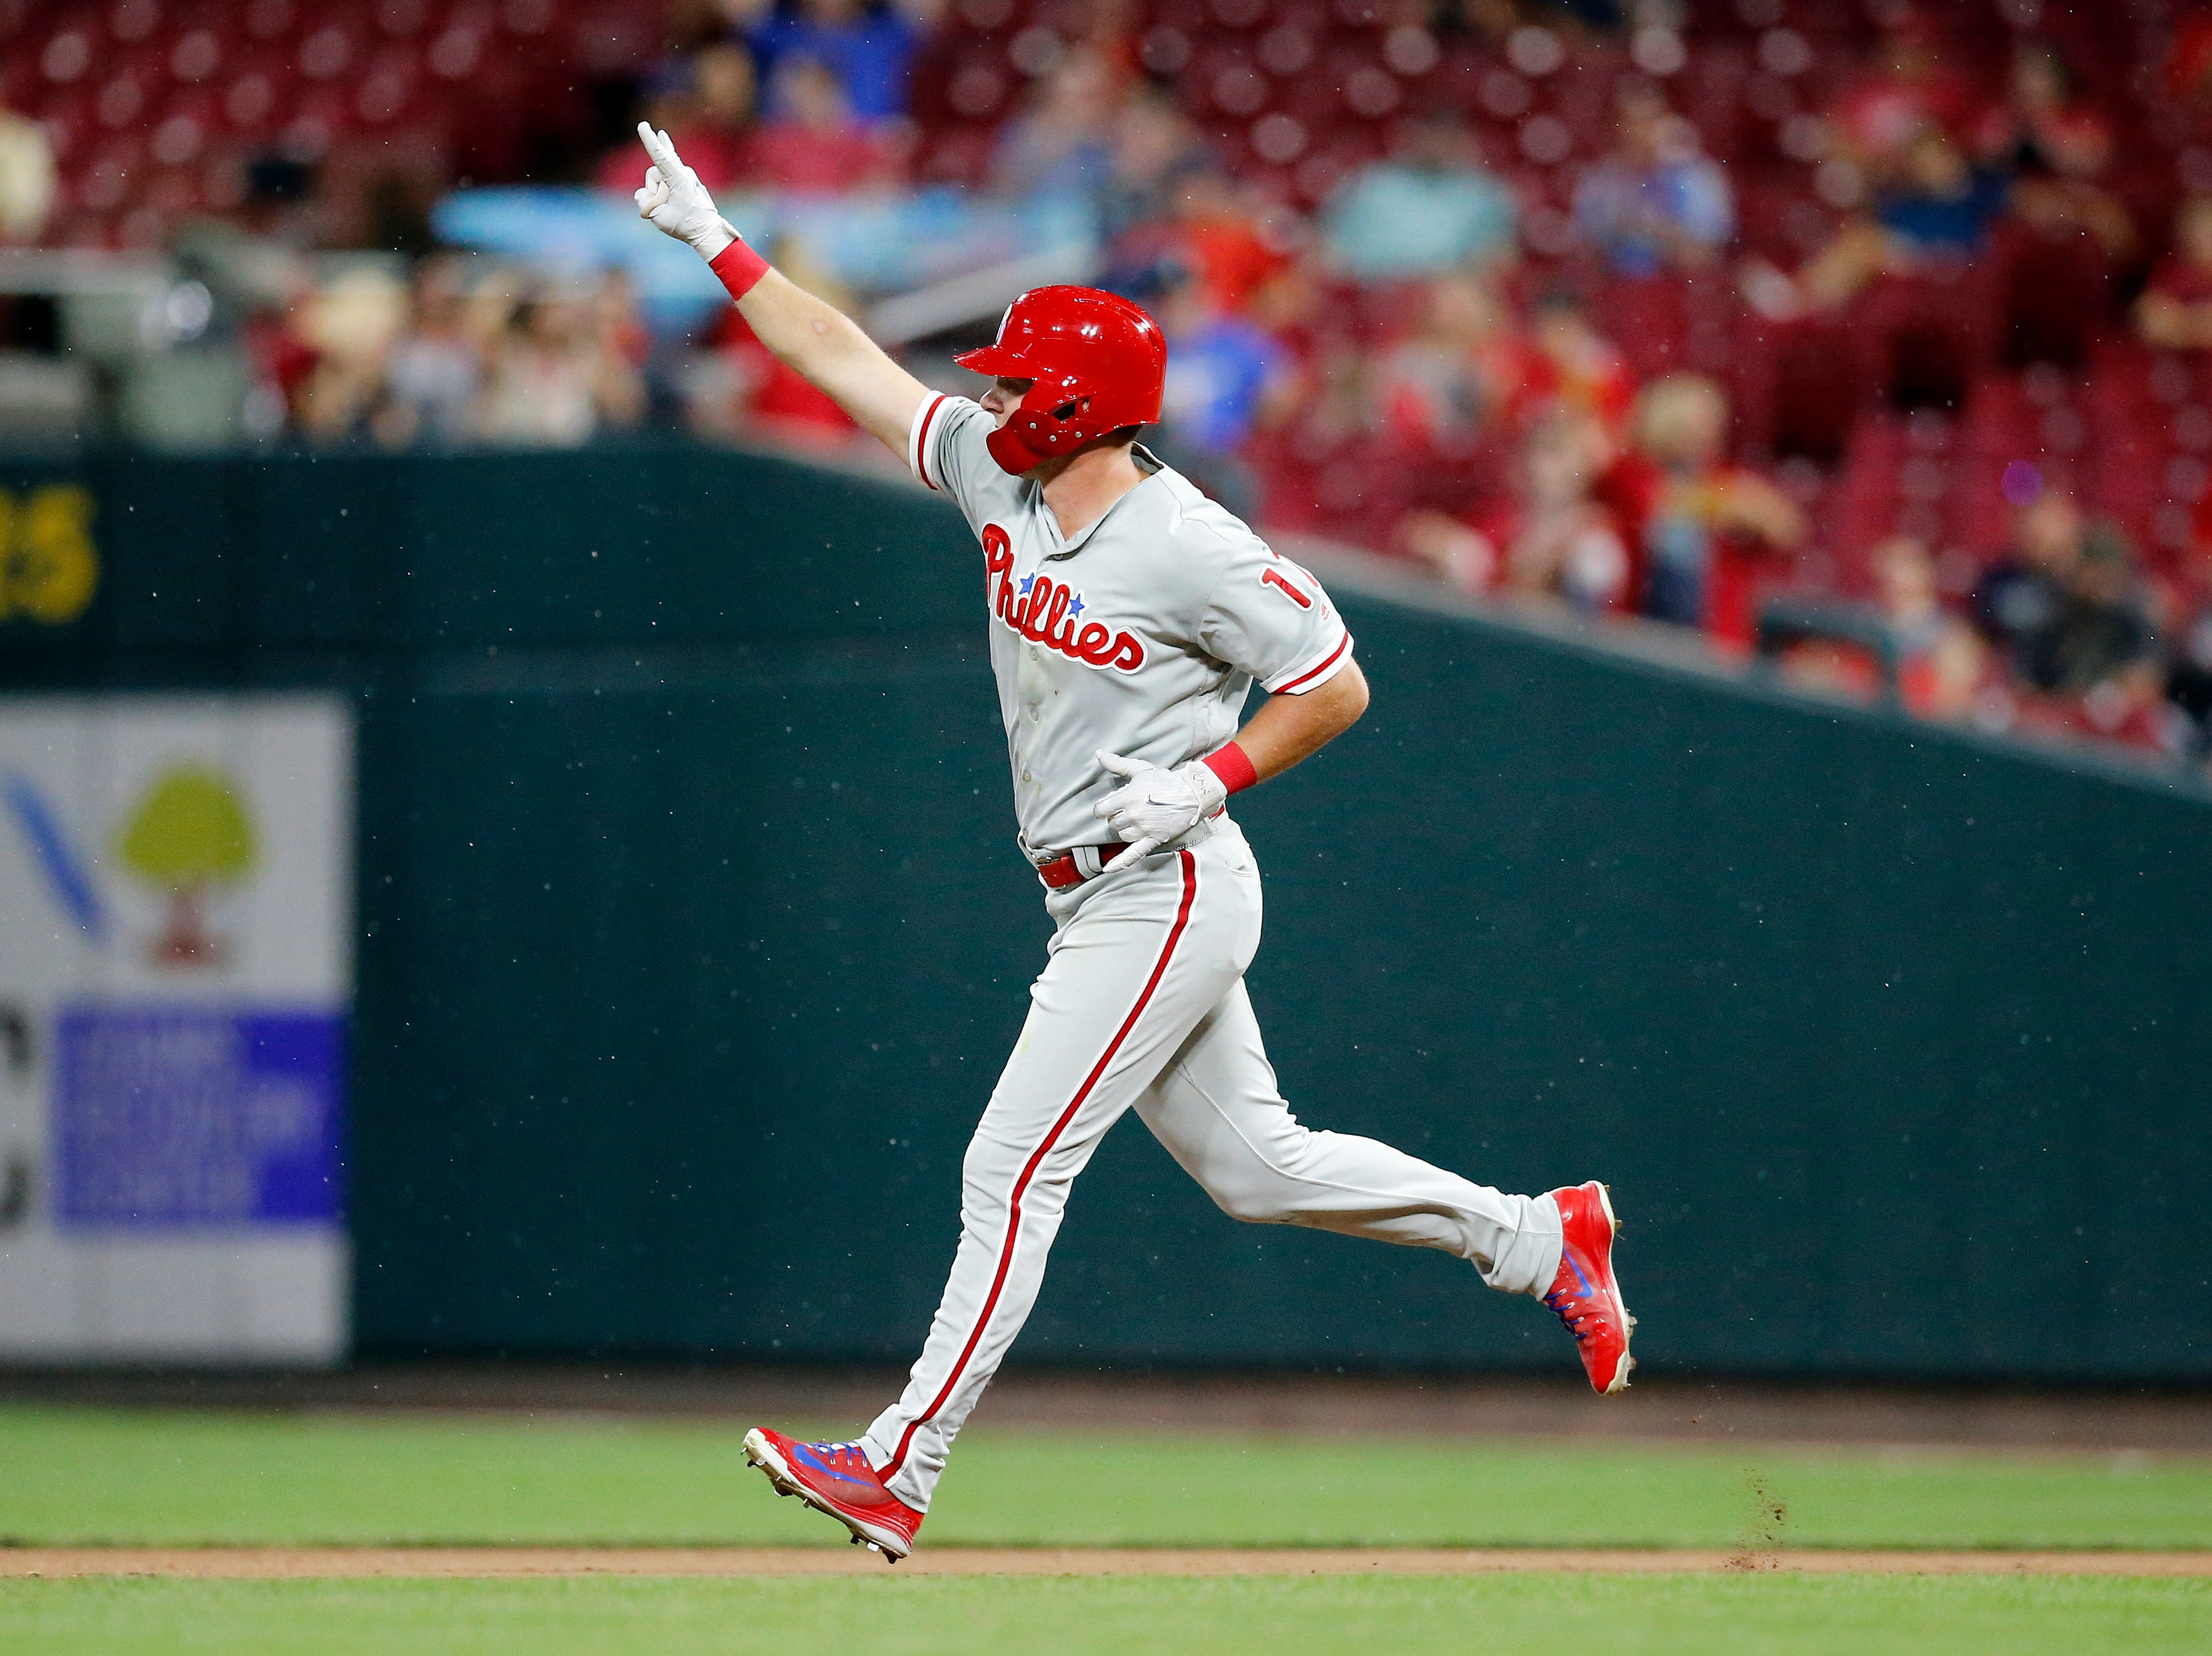 Philadelphia Phillies left fielder Rhys Hoskins (17) rounds the bases on his second home run of the night in the top of the sixth inning of the MLB National League game between the Cincinnati Reds and the Philadelphia Phillies at Great American Ball Park in downtown Cincinnati on Thursday, July 26, 2018. The Reds lost 9-4.